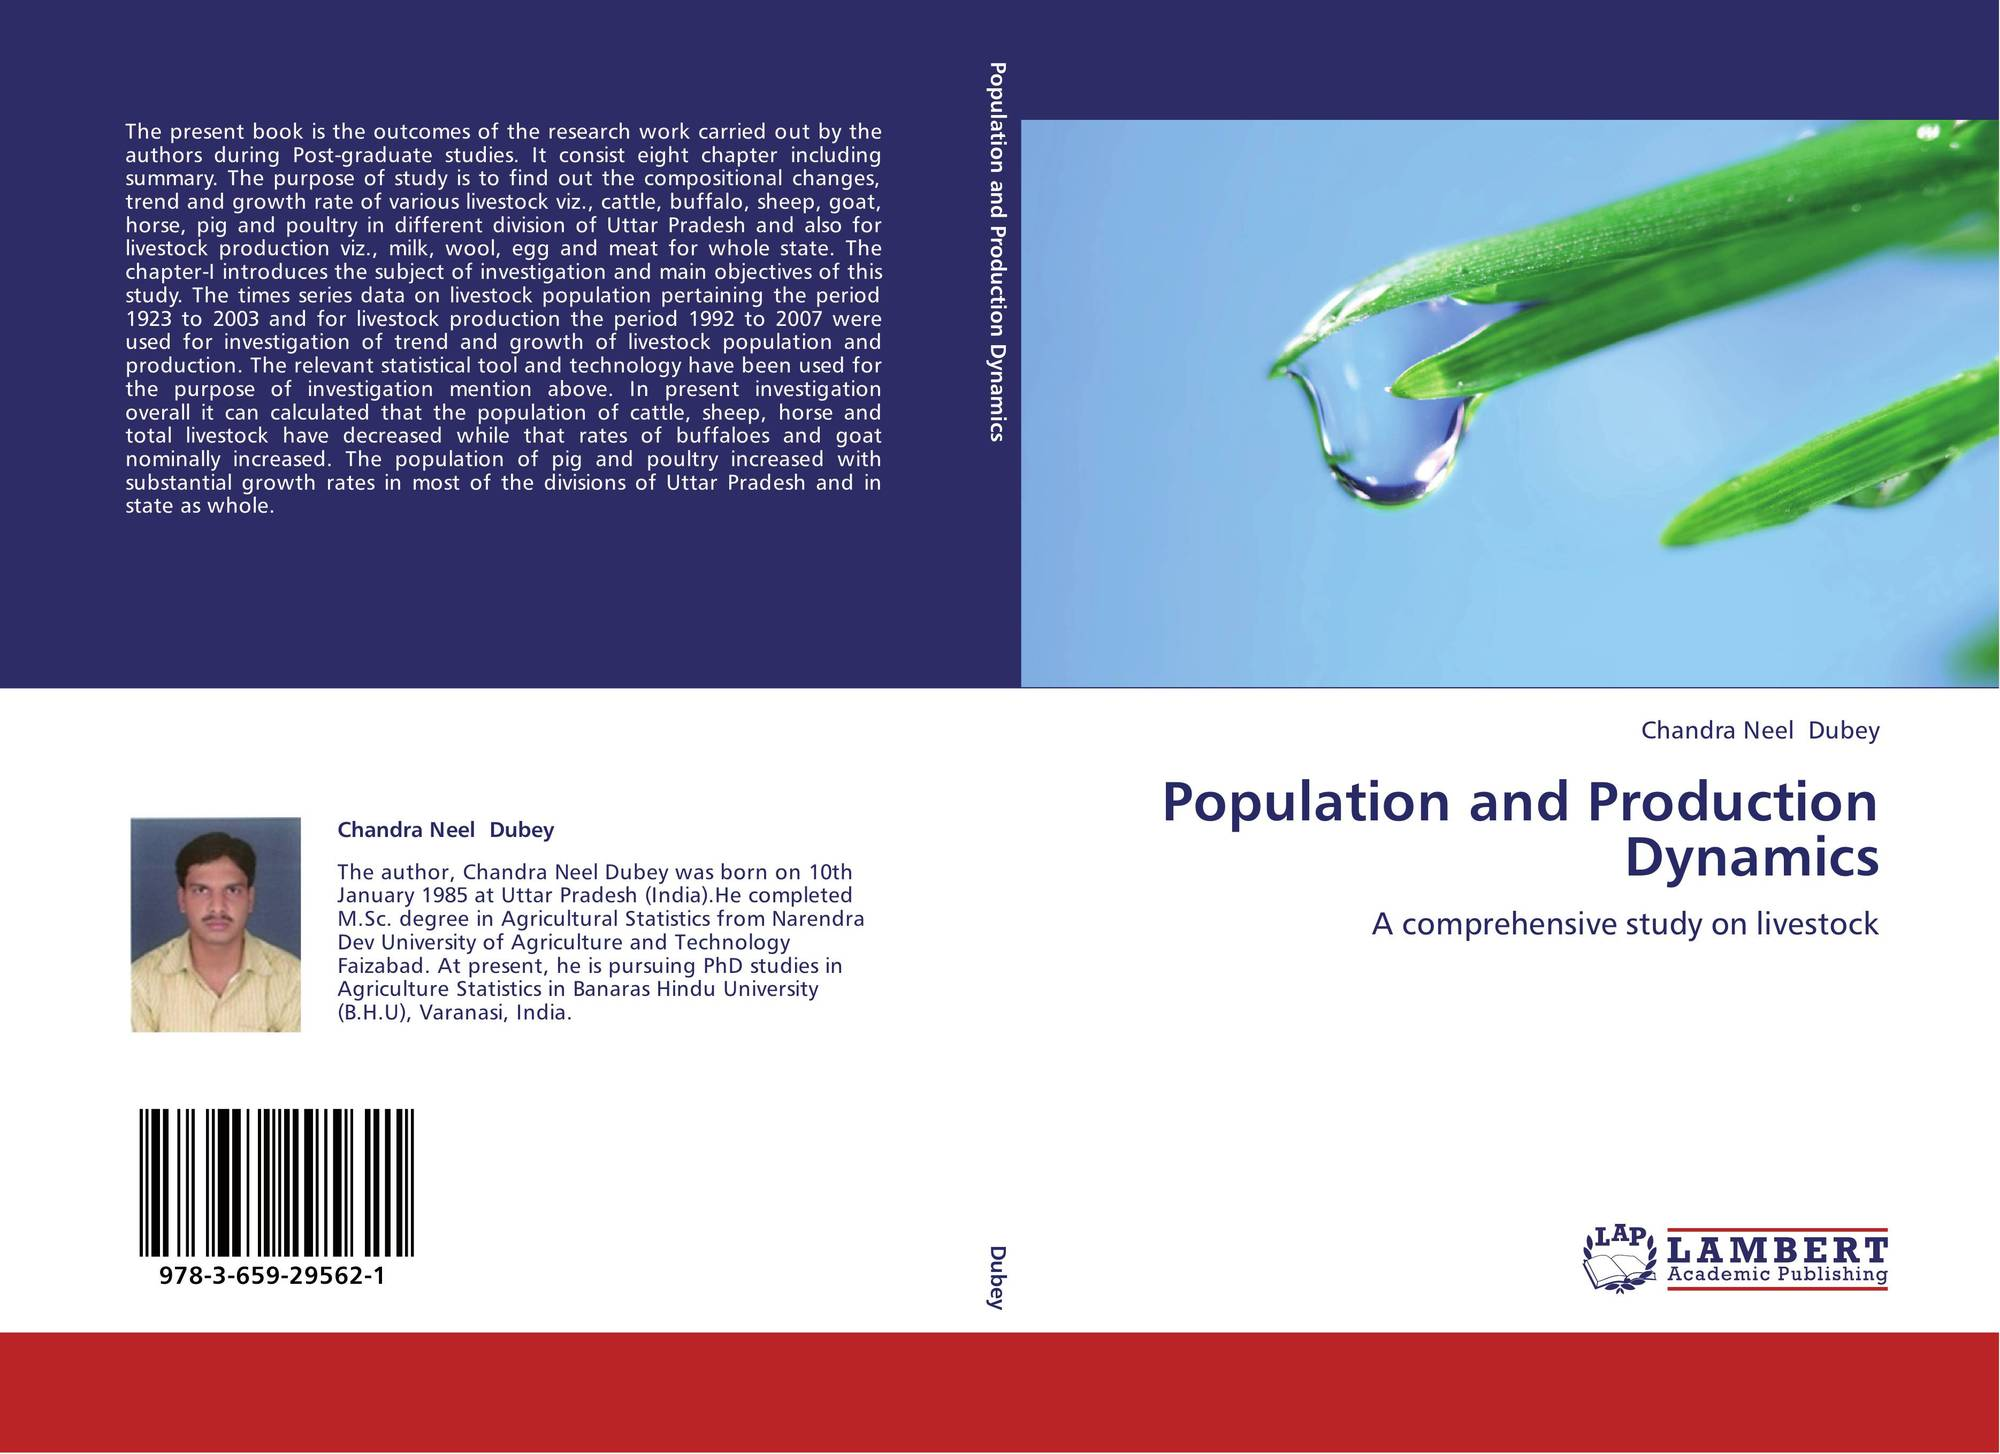 Population and Production Dynamics, 978-3-659-29562-1